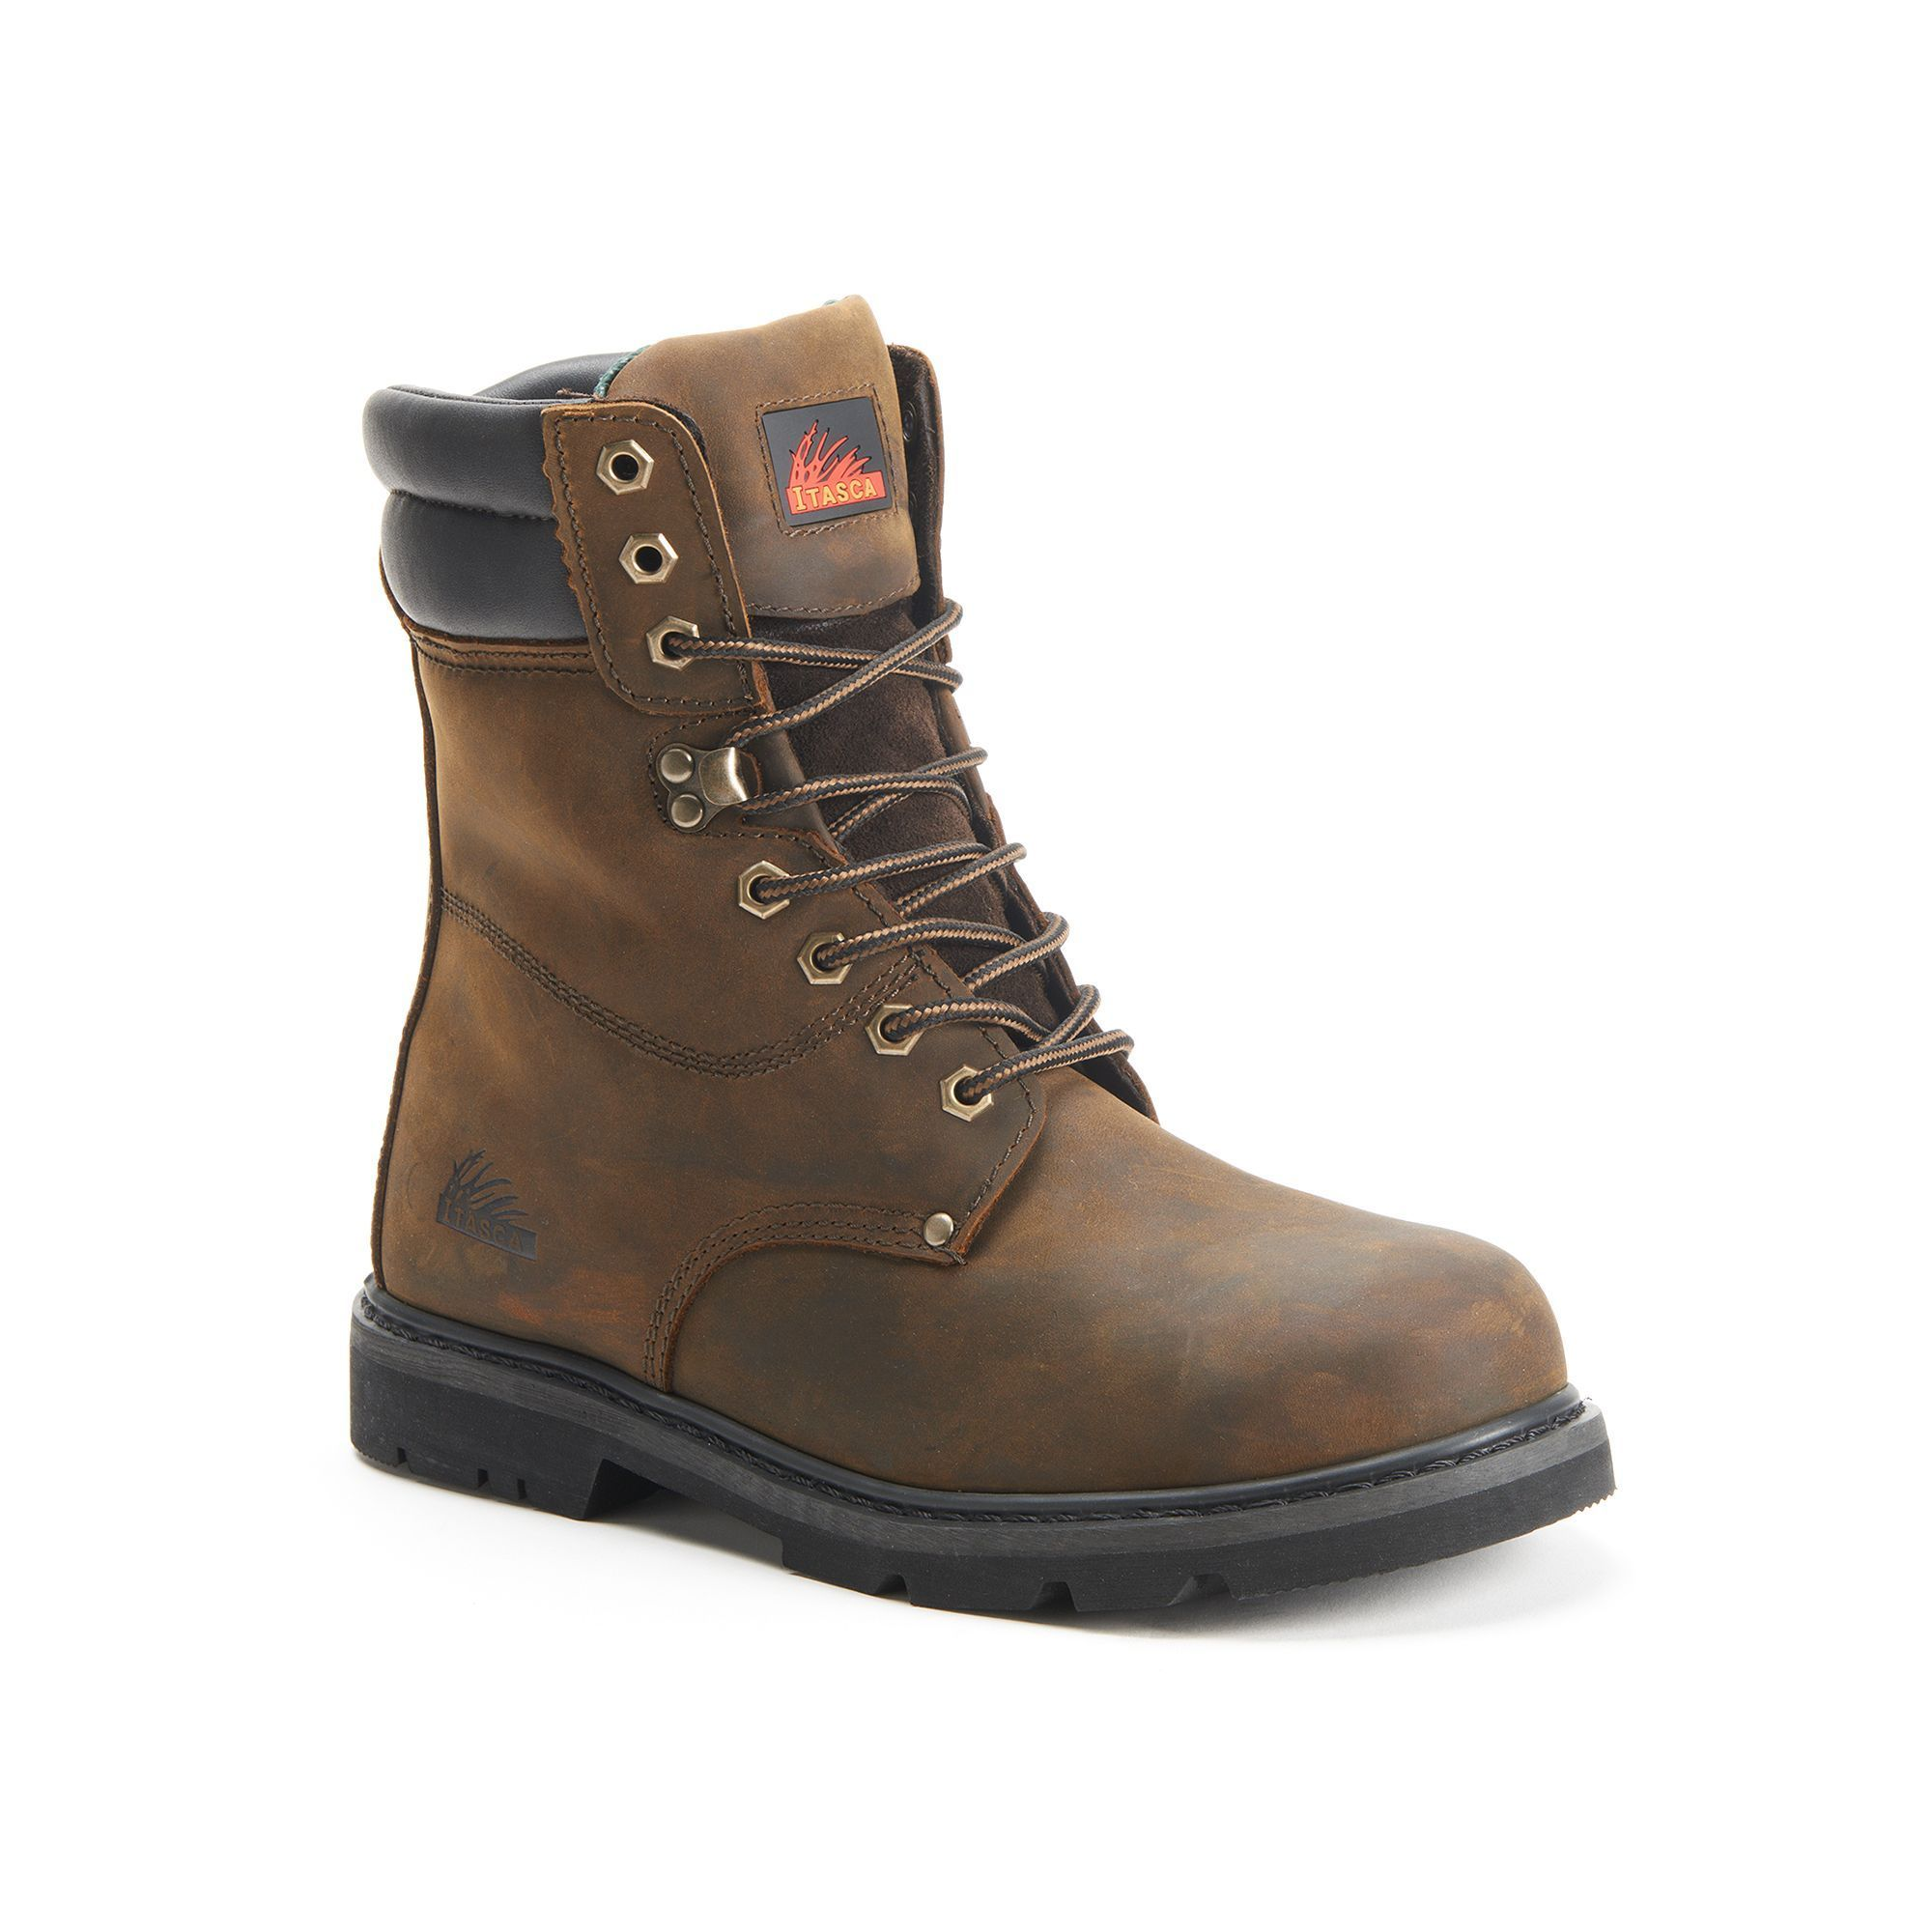 Itasca Force 10 Mens Steel Toe Work Boots Size 105 Brown